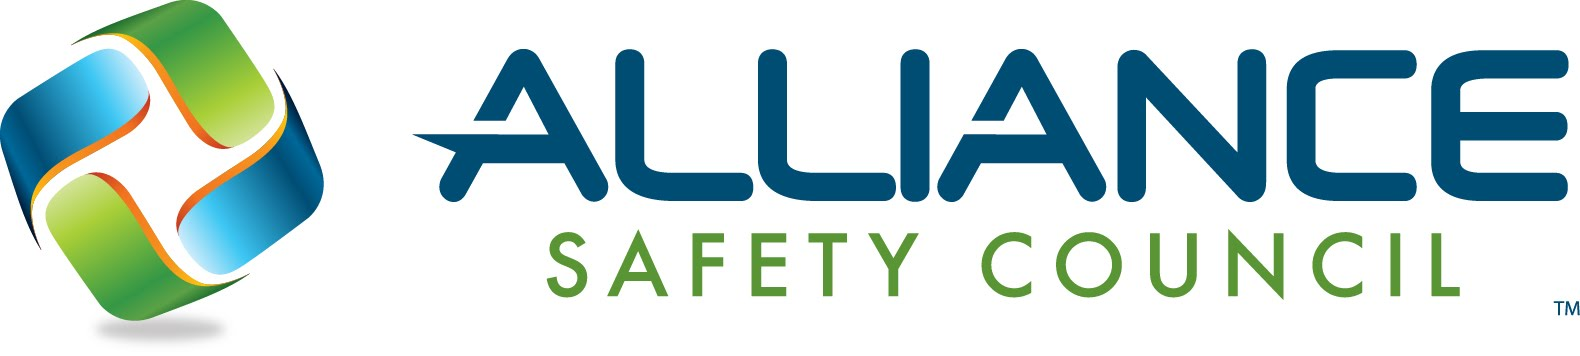 https://alliancesafetycouncil.org/